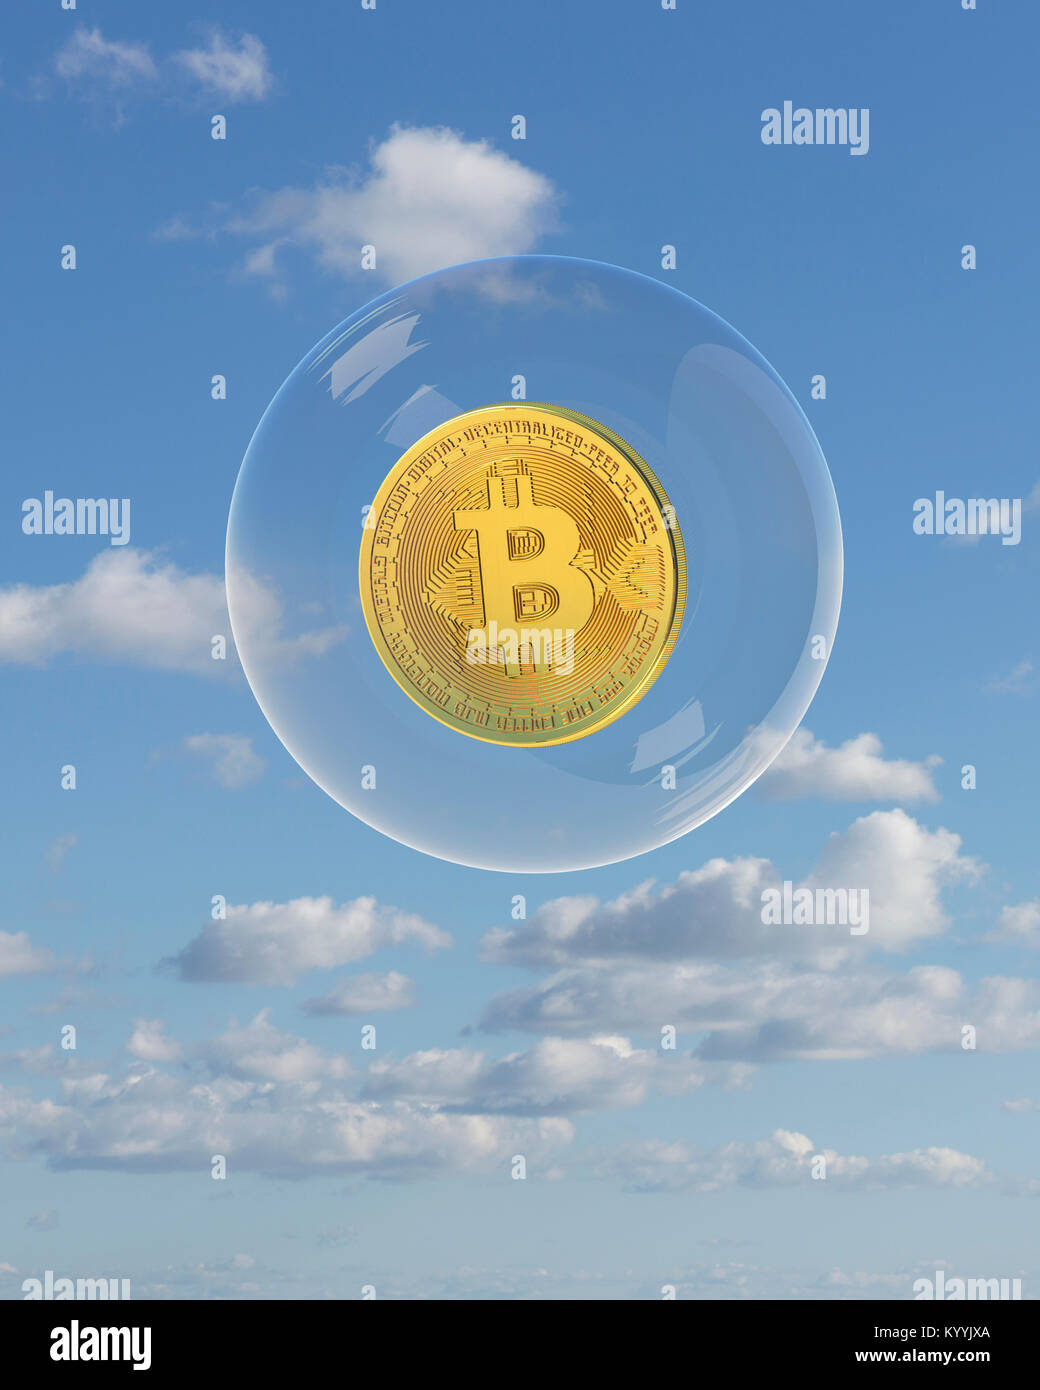 Dans une bulle flottante Bitcoin - blockchain, concept cryptocurrency Photo Stock